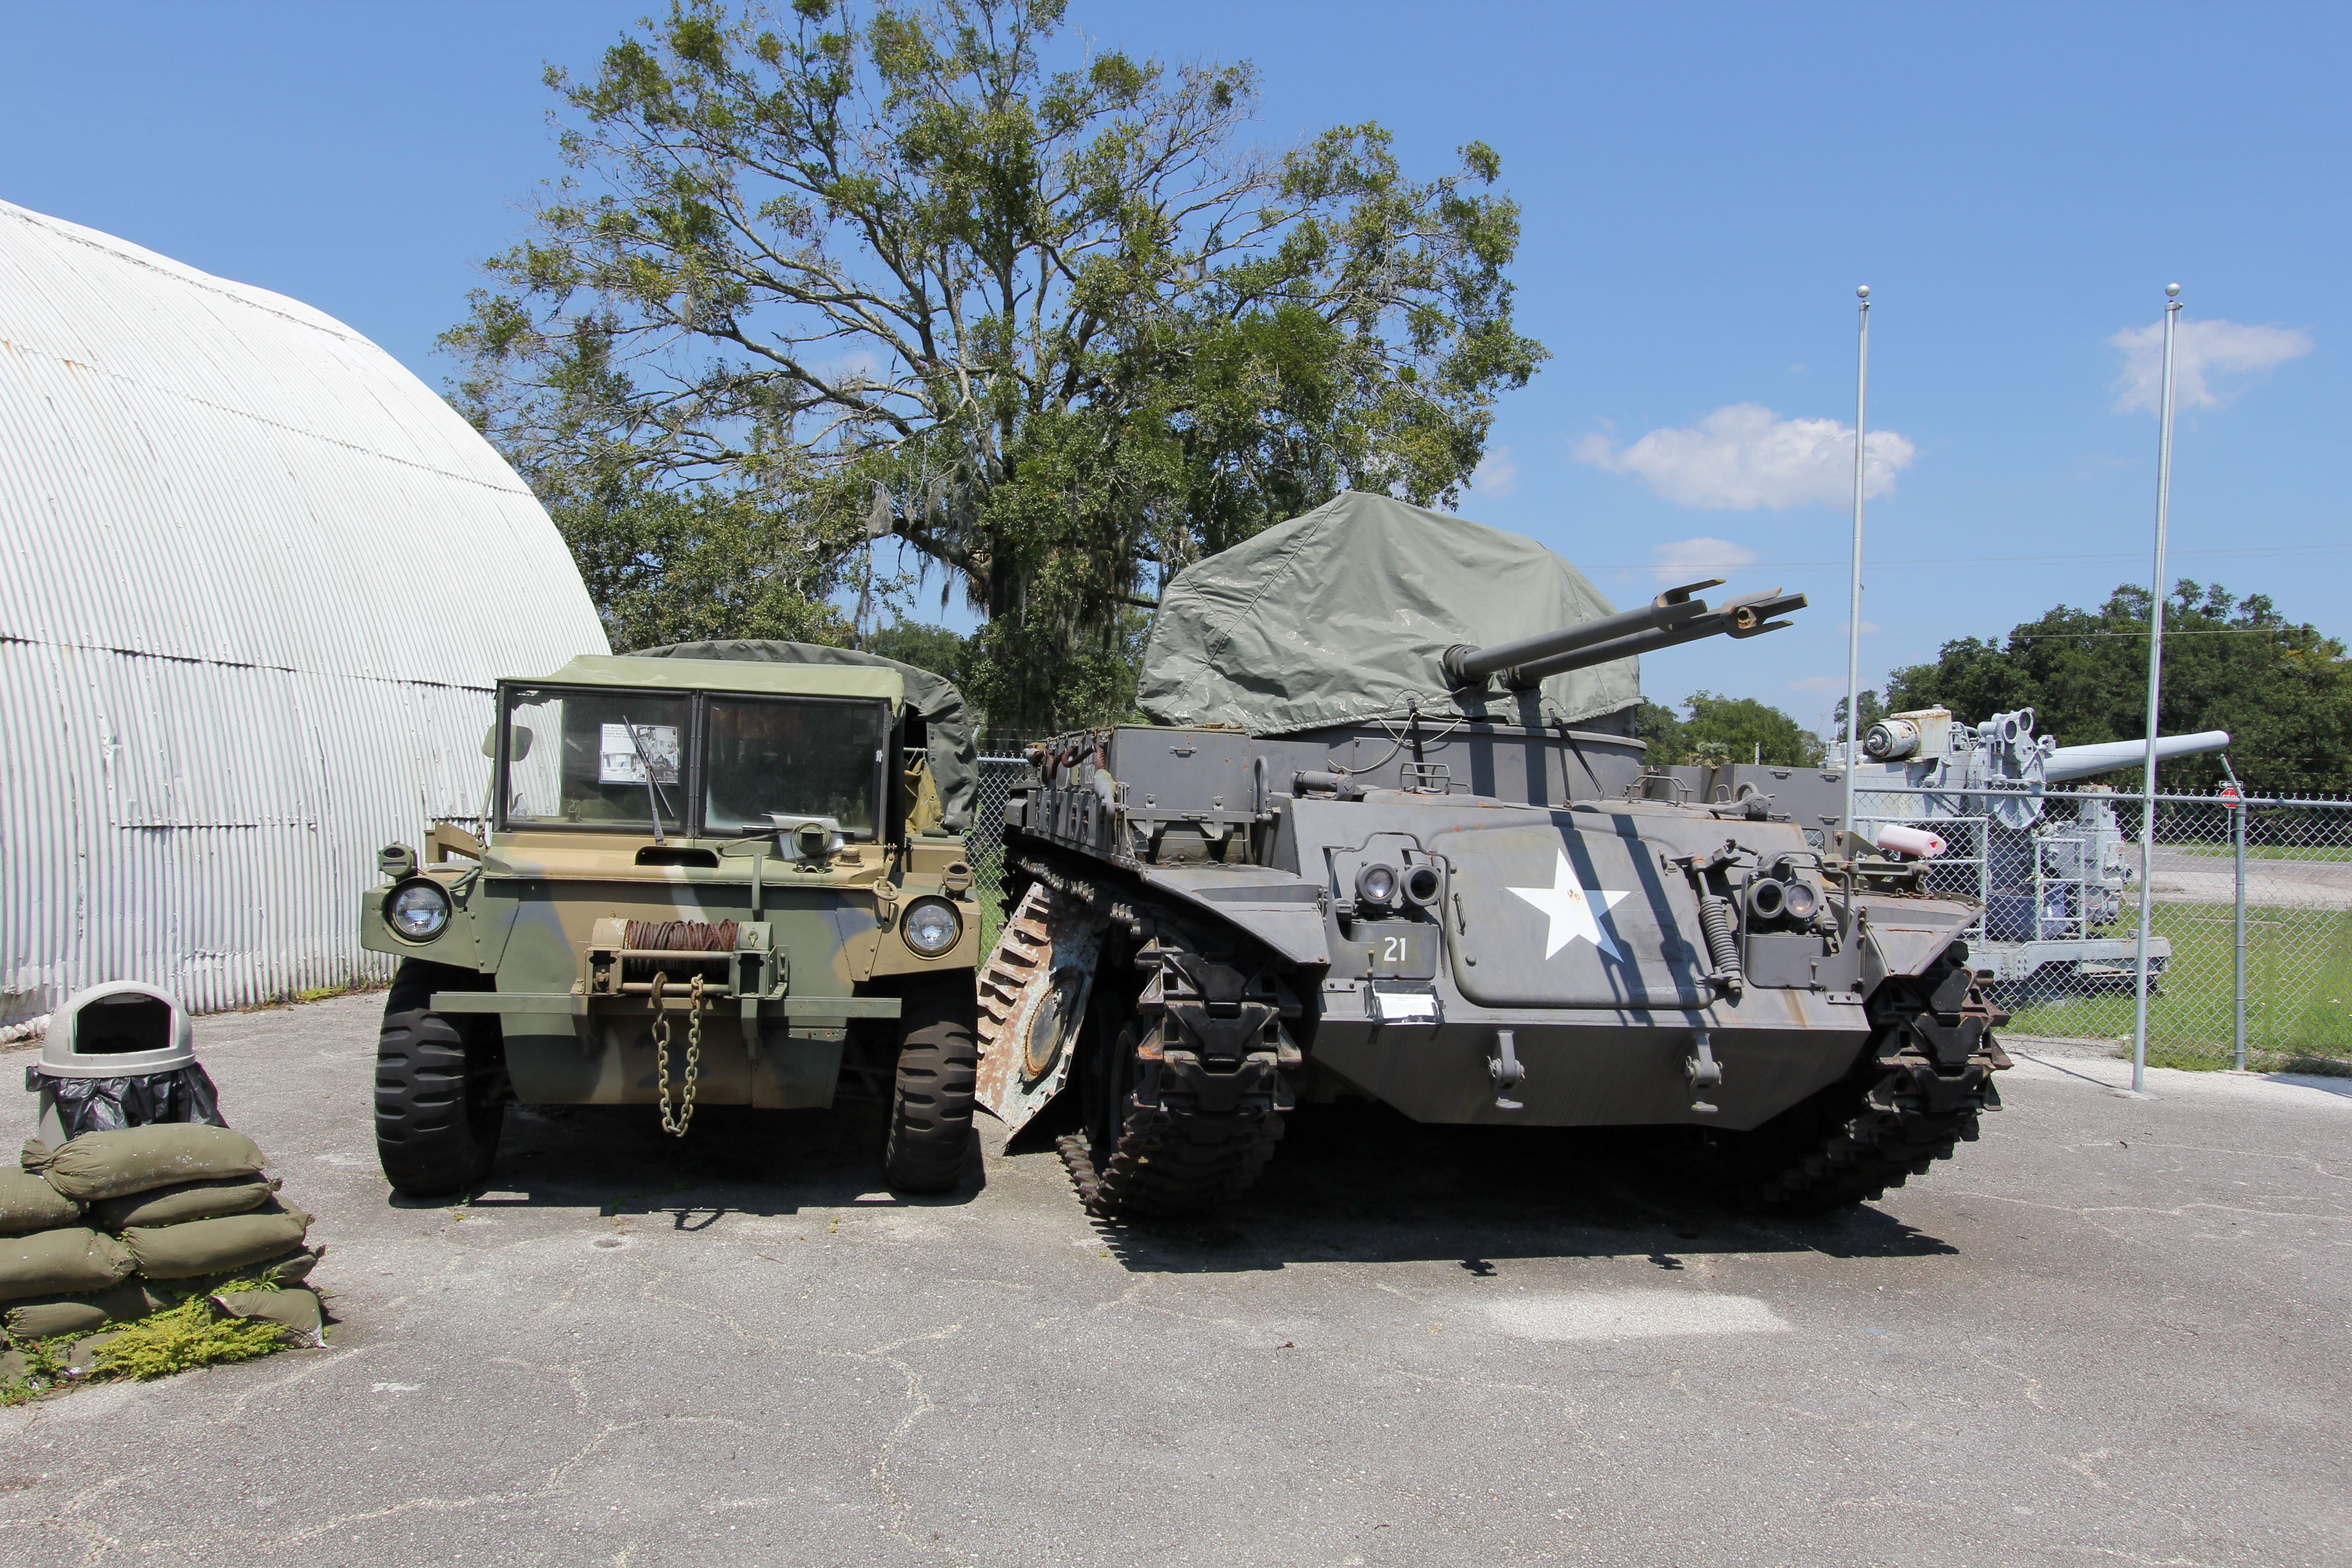 Military Museum of North Florida - Historic Vehicles